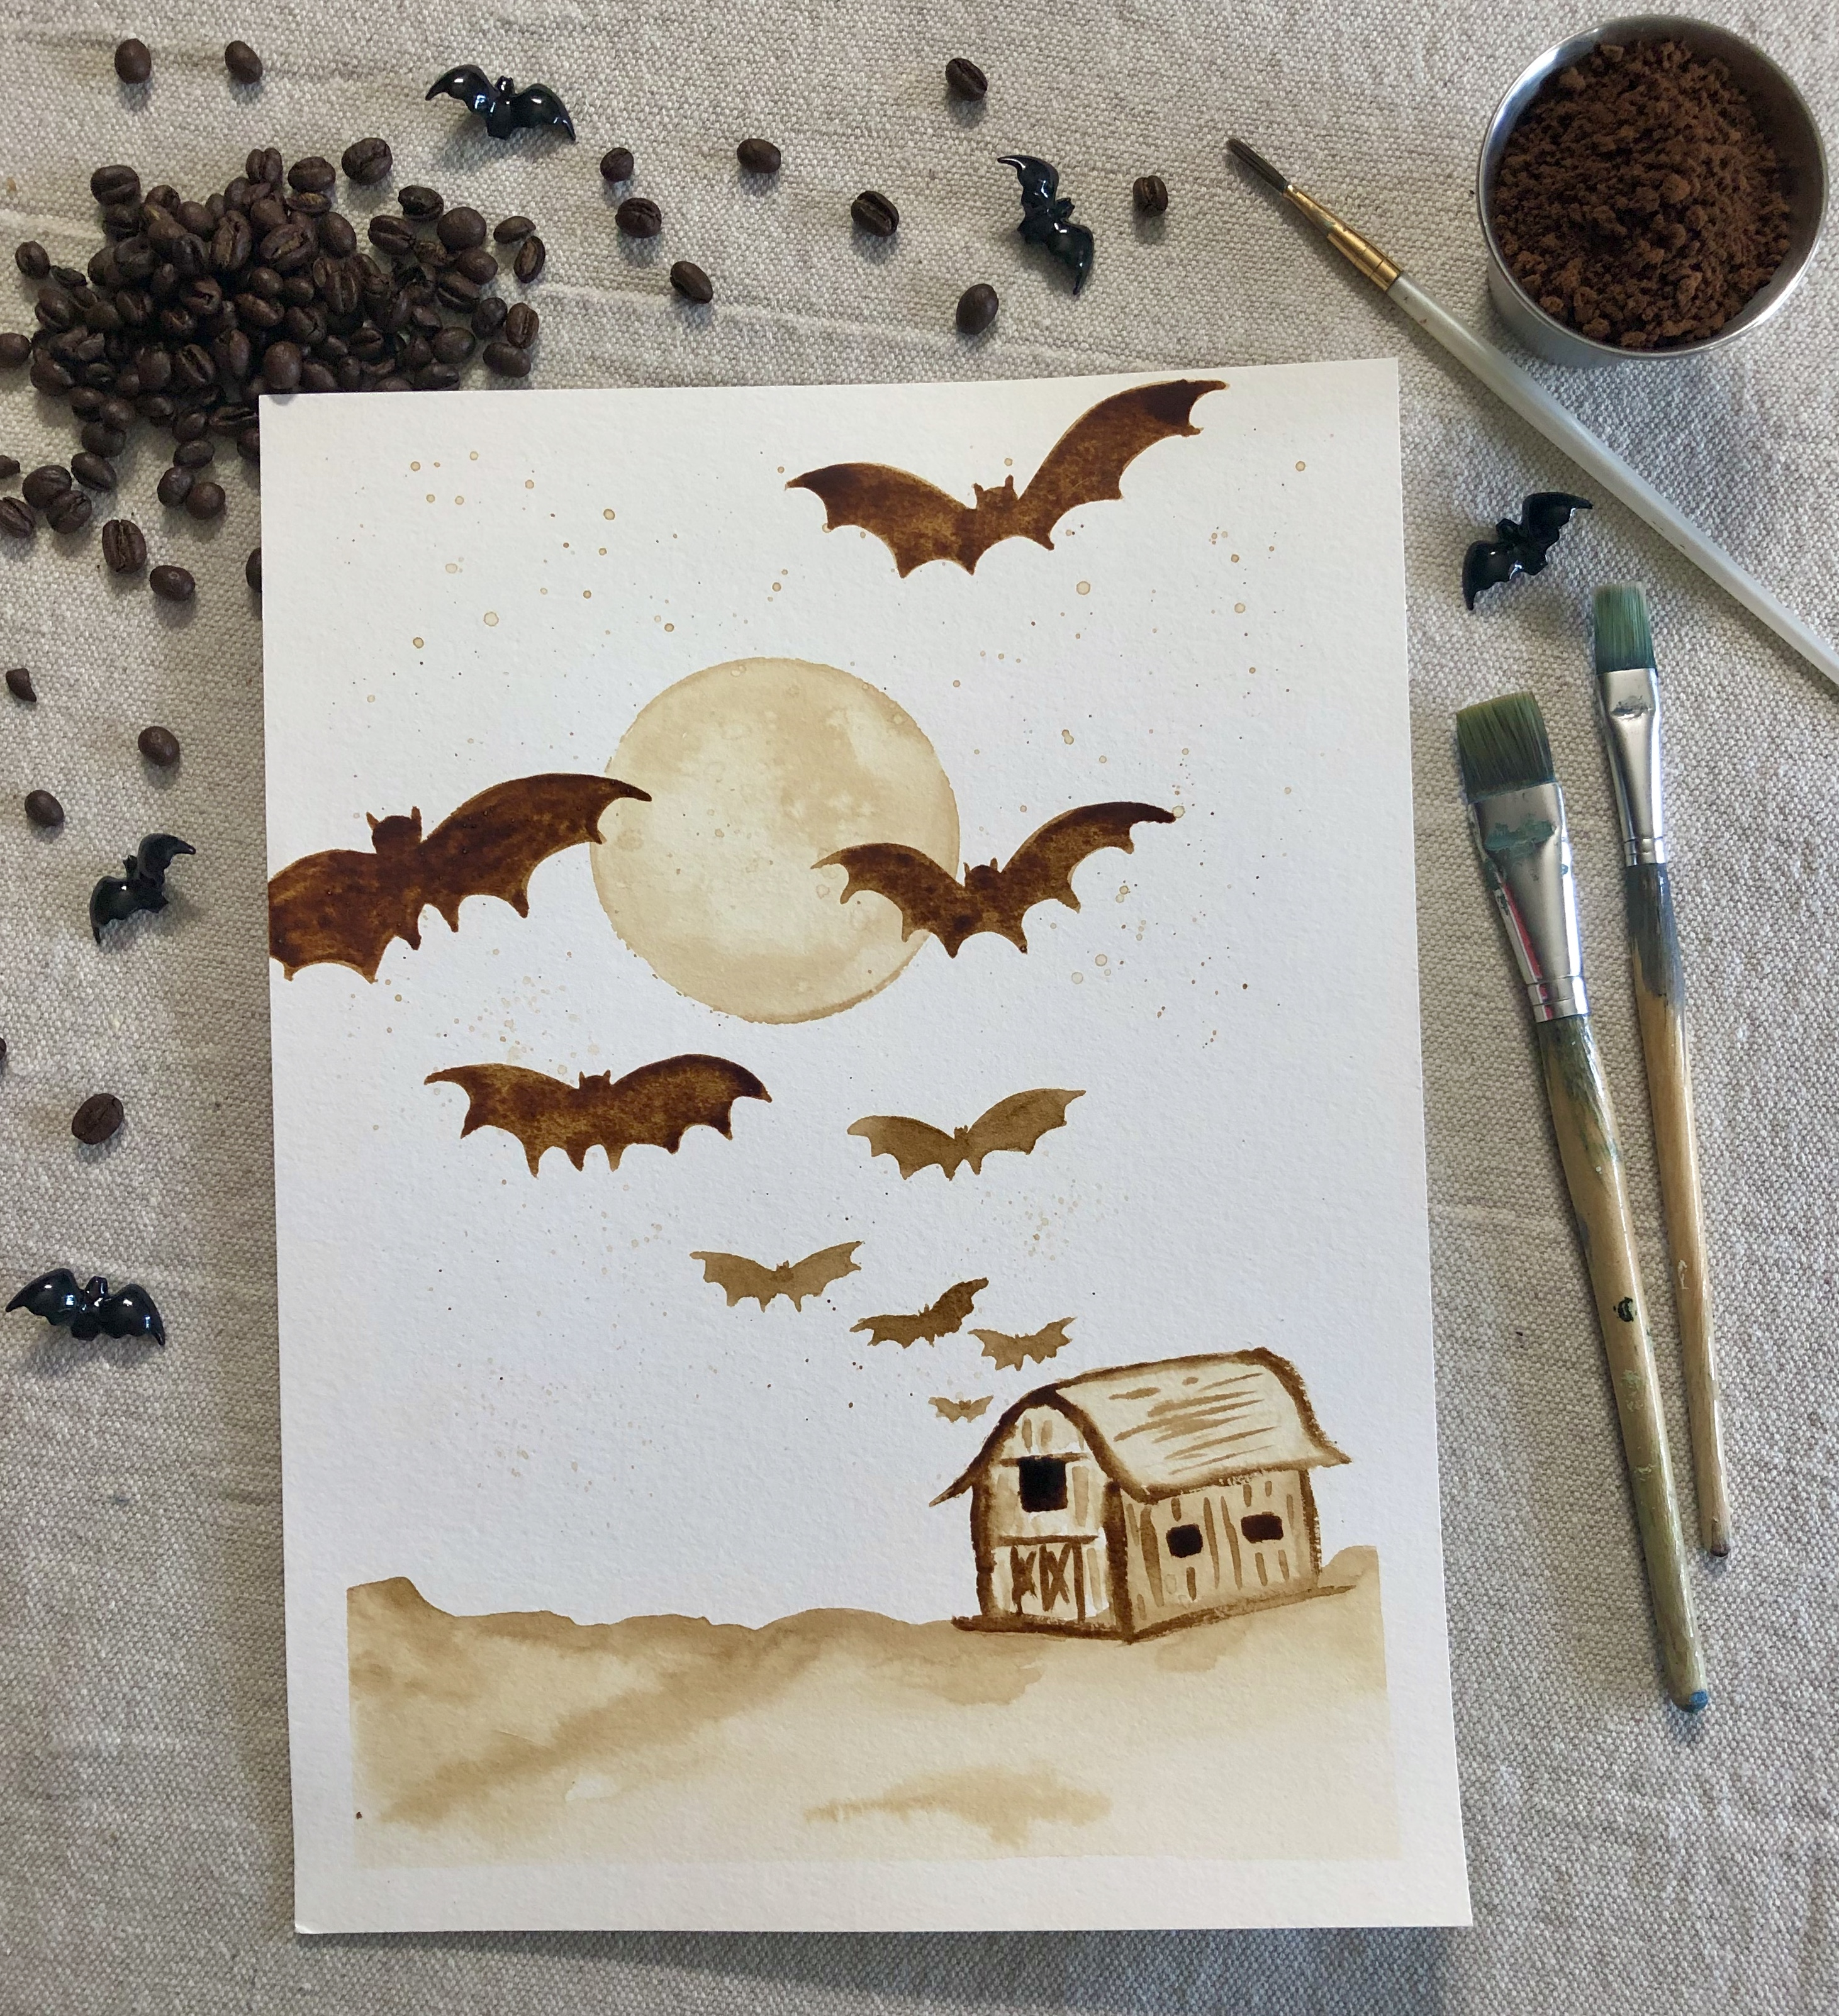 A Bats Out of the Barn  Instant Coffee Painting experience project by Yaymaker